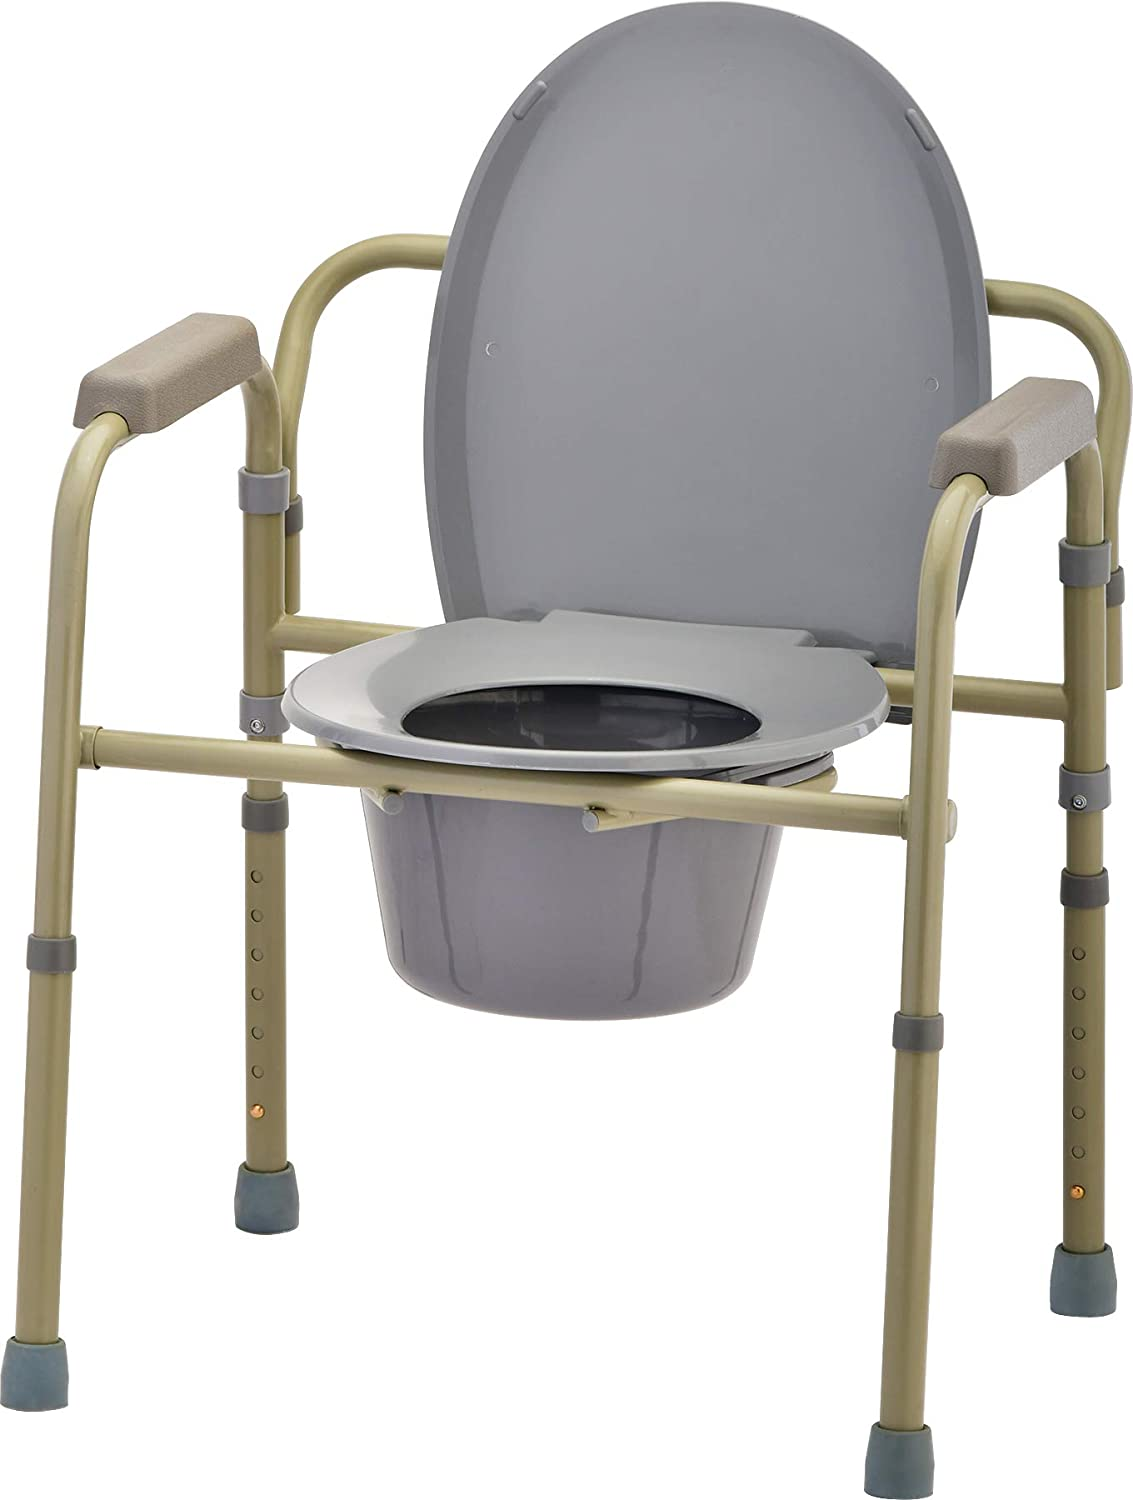 NOVA Folding Commode, Over Toilet and Bedside Commode, Comes with Splash Guard/Bucket/Lid: Health & Personal Care